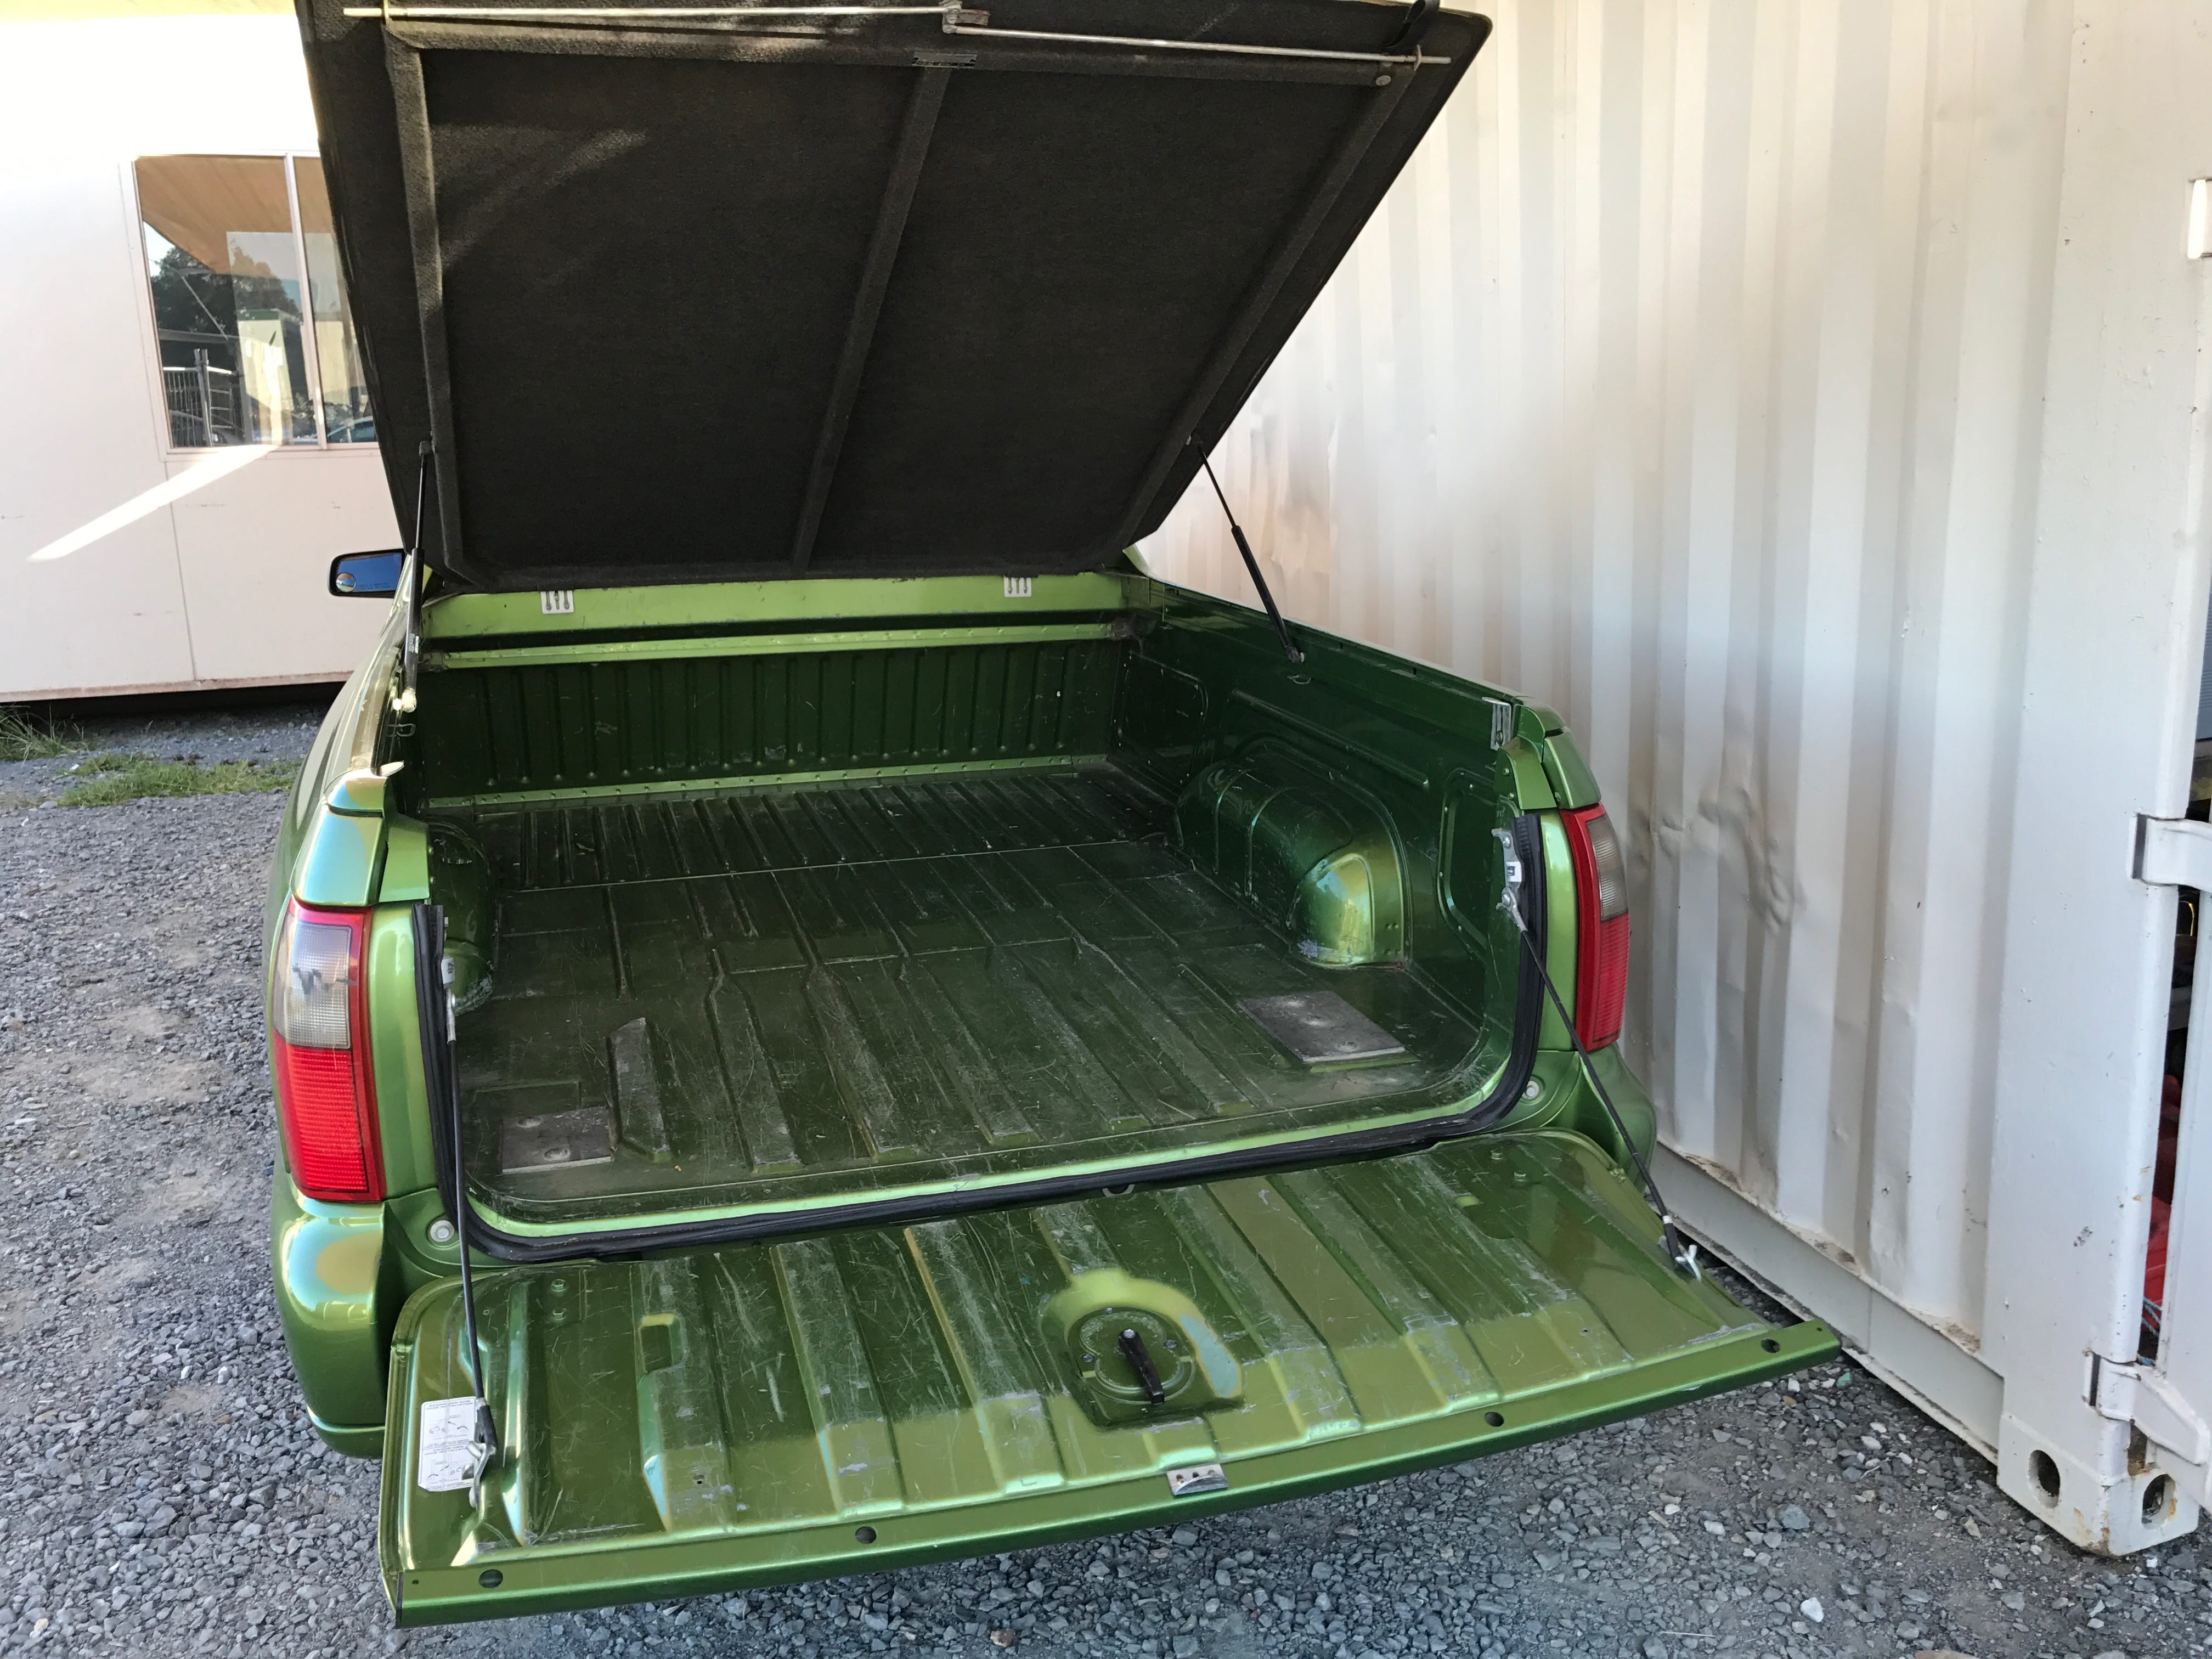 Manual Commodore Ute VY 6 cylinder with hardlid 2003 for sale 7-min